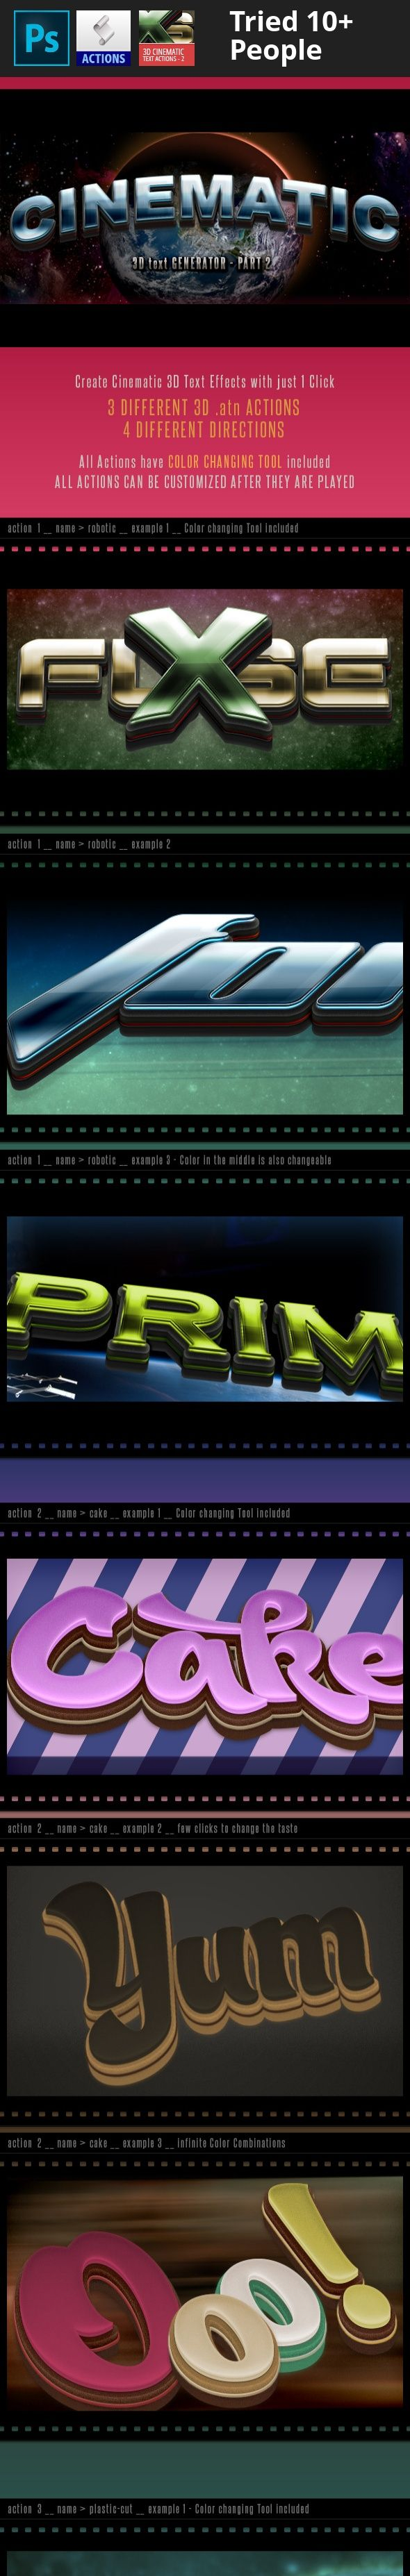 3d, 3d action, 3d actions, 3d effect, 3d generator, 3d layer, 3d text, action, army, atn, cake, cinema, cinematic, clean, dark, depth, film, force, future, generator, gold, military, movie, multicolor, perspective, silver, space, tasty, text effect, three dimensional 3D Cinematic Text Effect Generator – Part 2 – Actions  New Generation of ATN Photoshop Actions are perfect for any kind of your project.   If You like these Actions, check also other 3D Text Actions        3D Cinematic T...